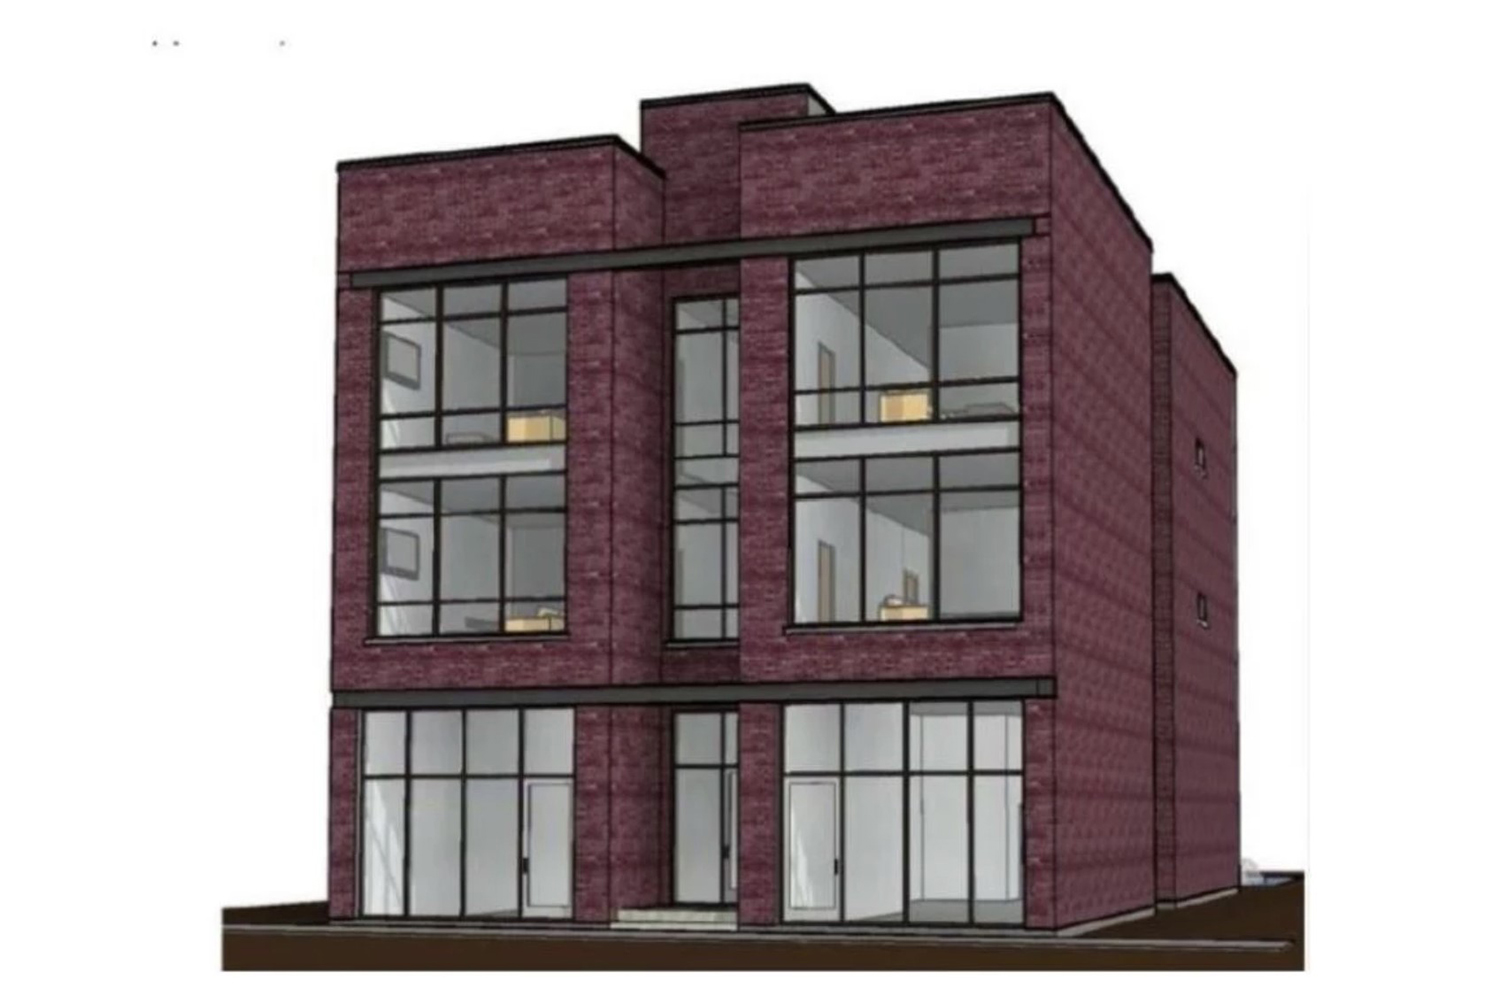 1005 West 31st Street. Rendering by Variation Design